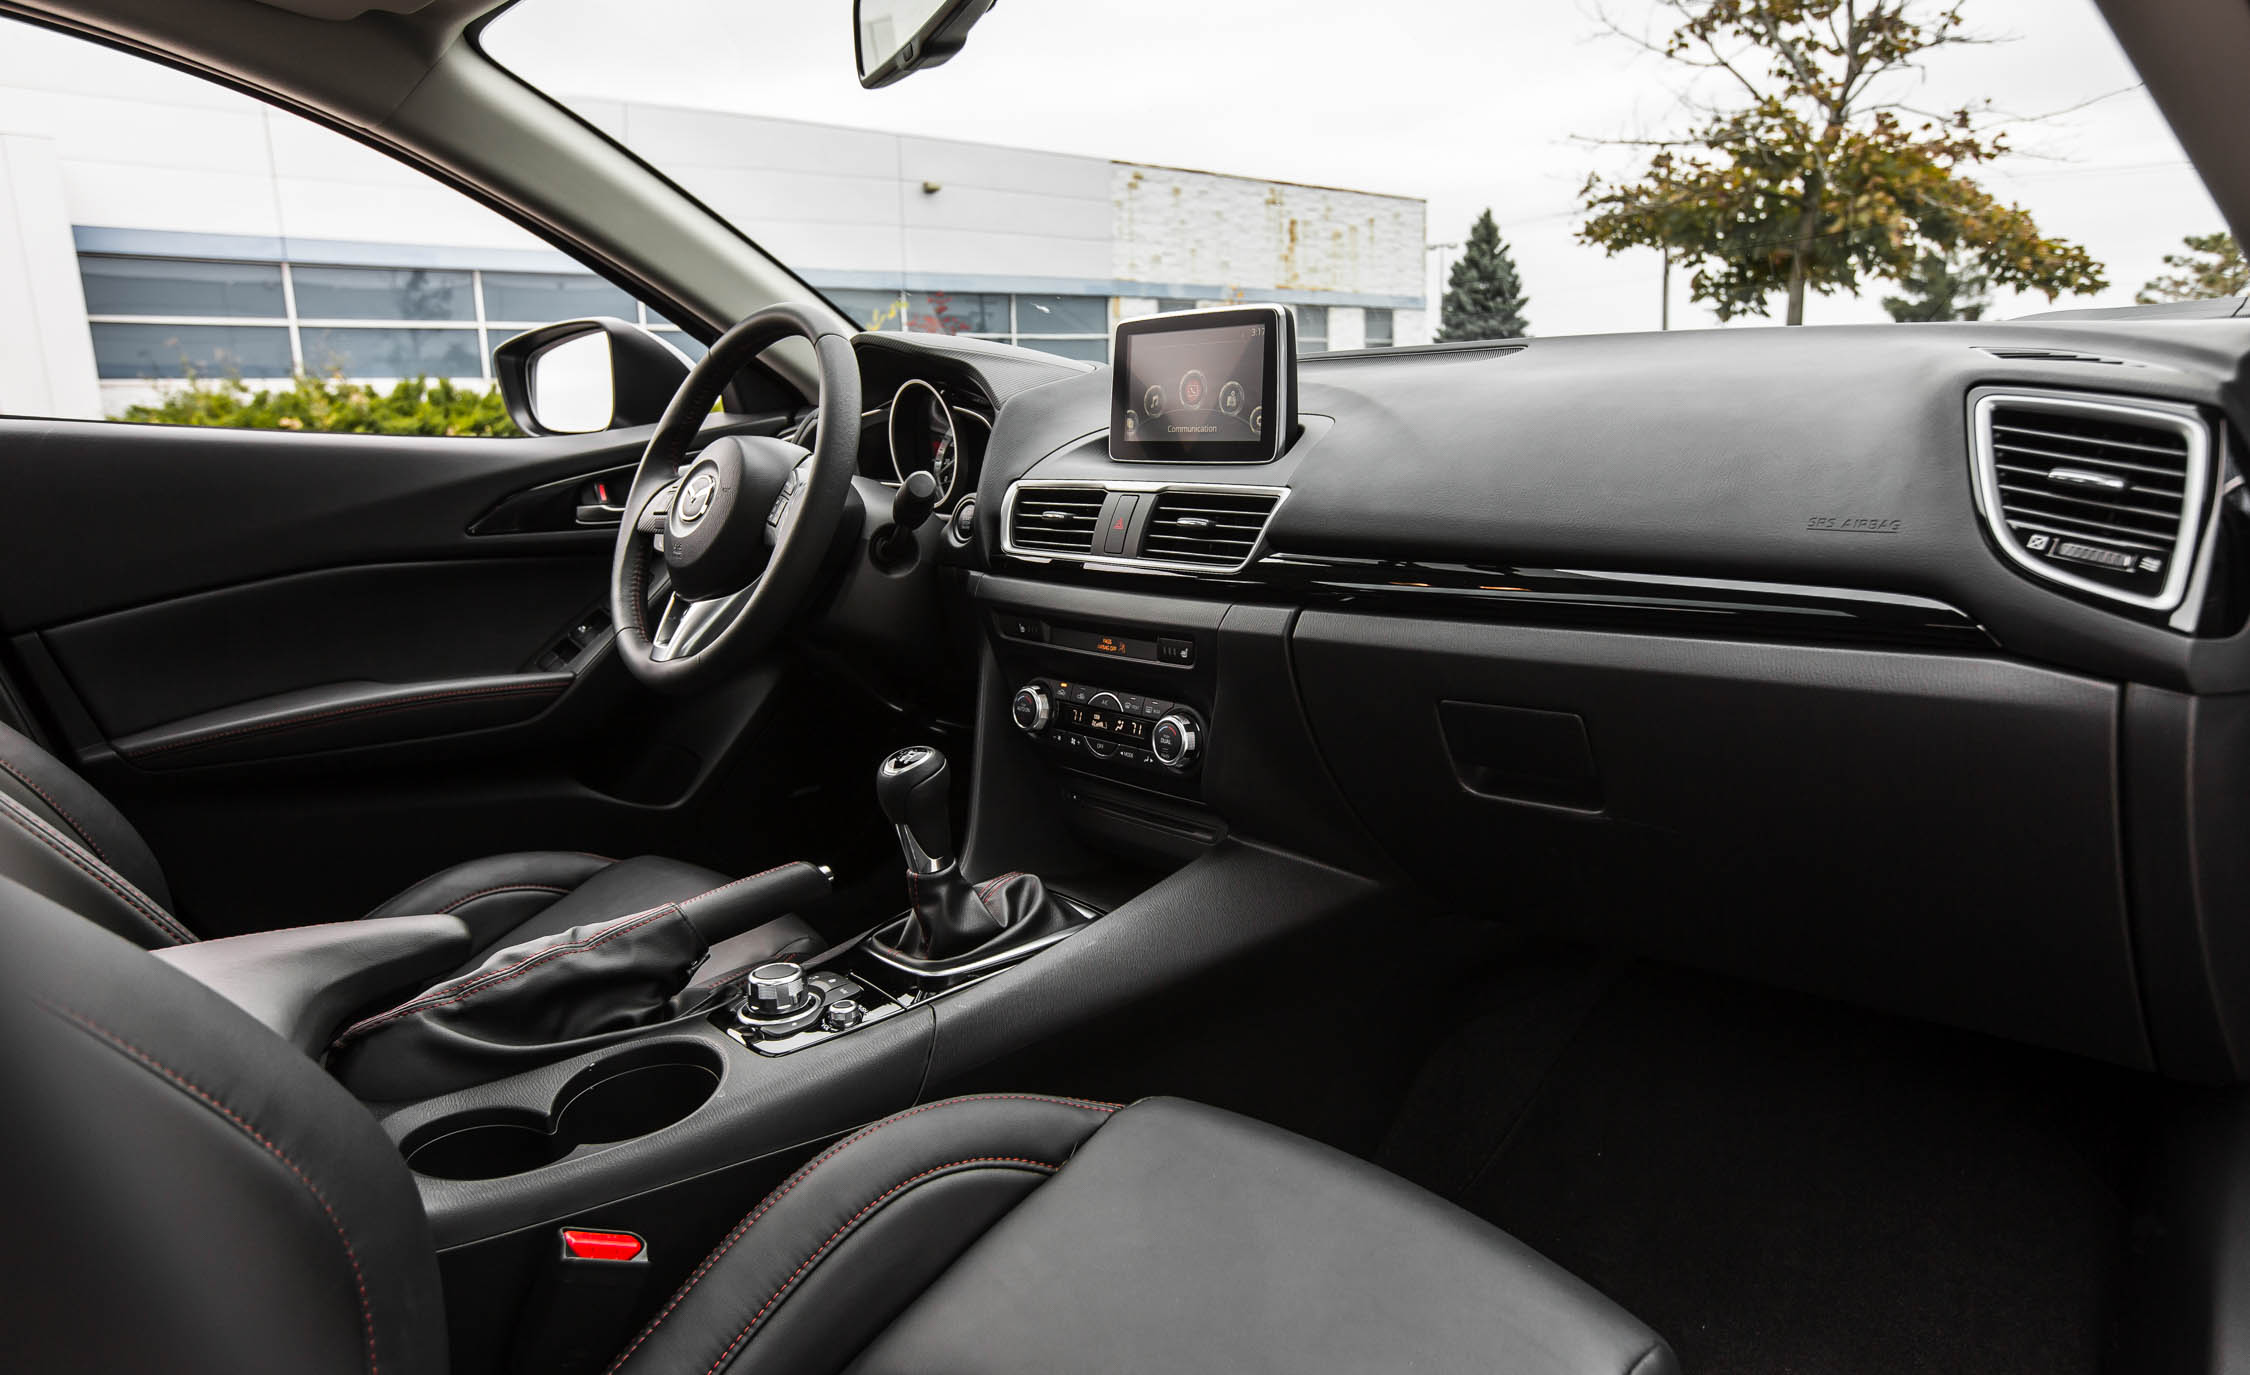 2016 Mazda 3 (View 15 of 22)